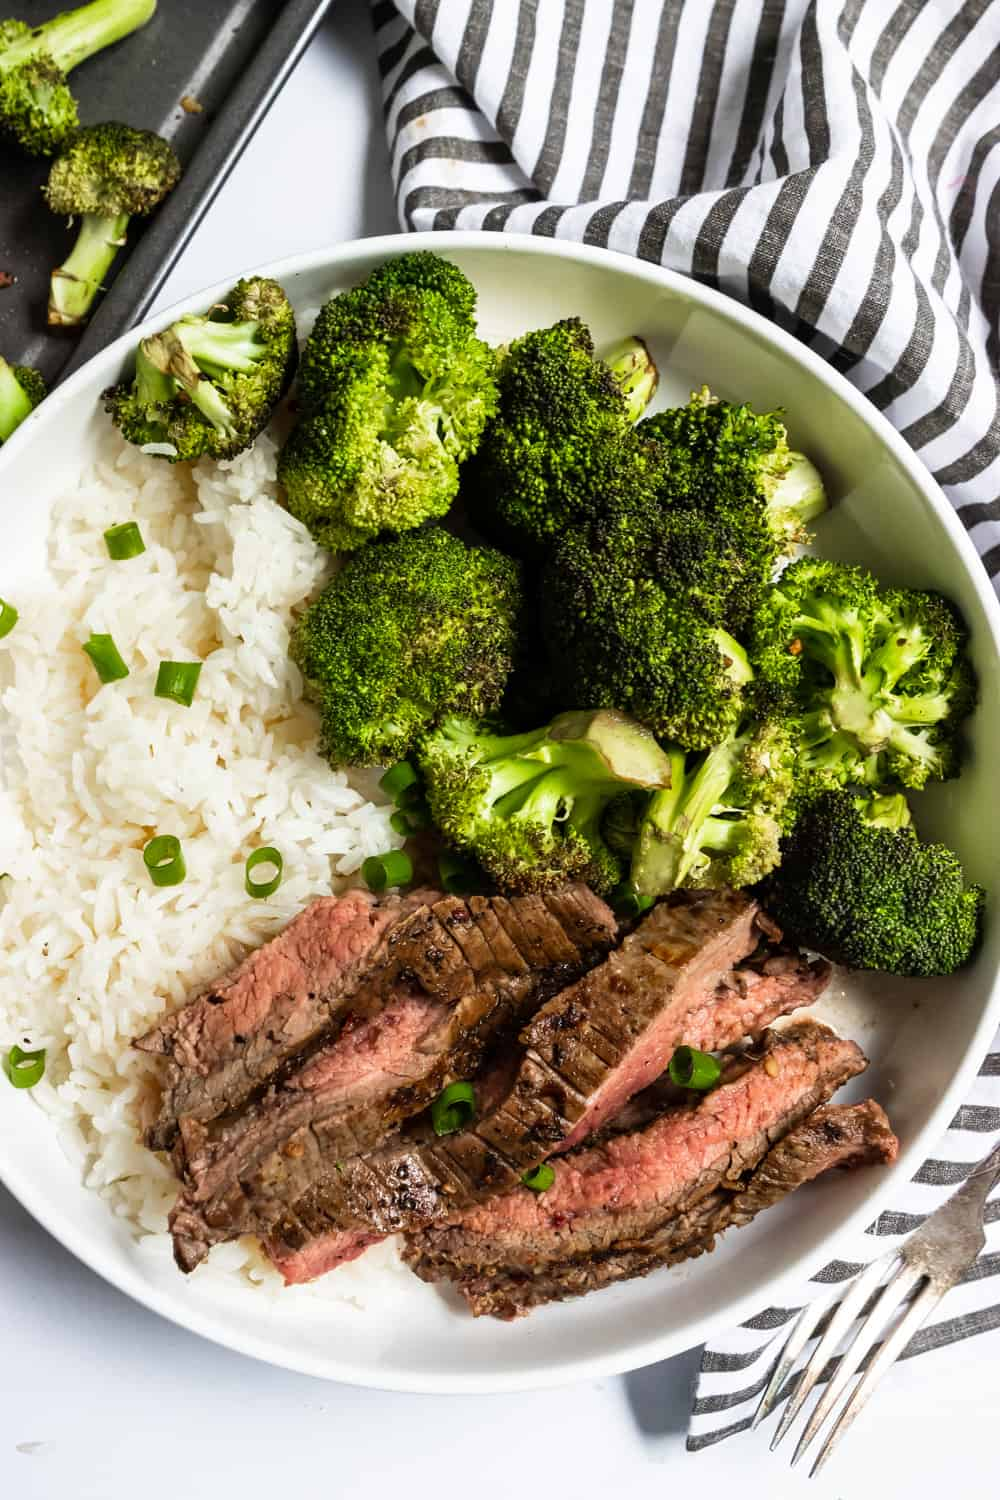 15 Minute Marinated Sheet Pan Steak and Broccoli Dinner